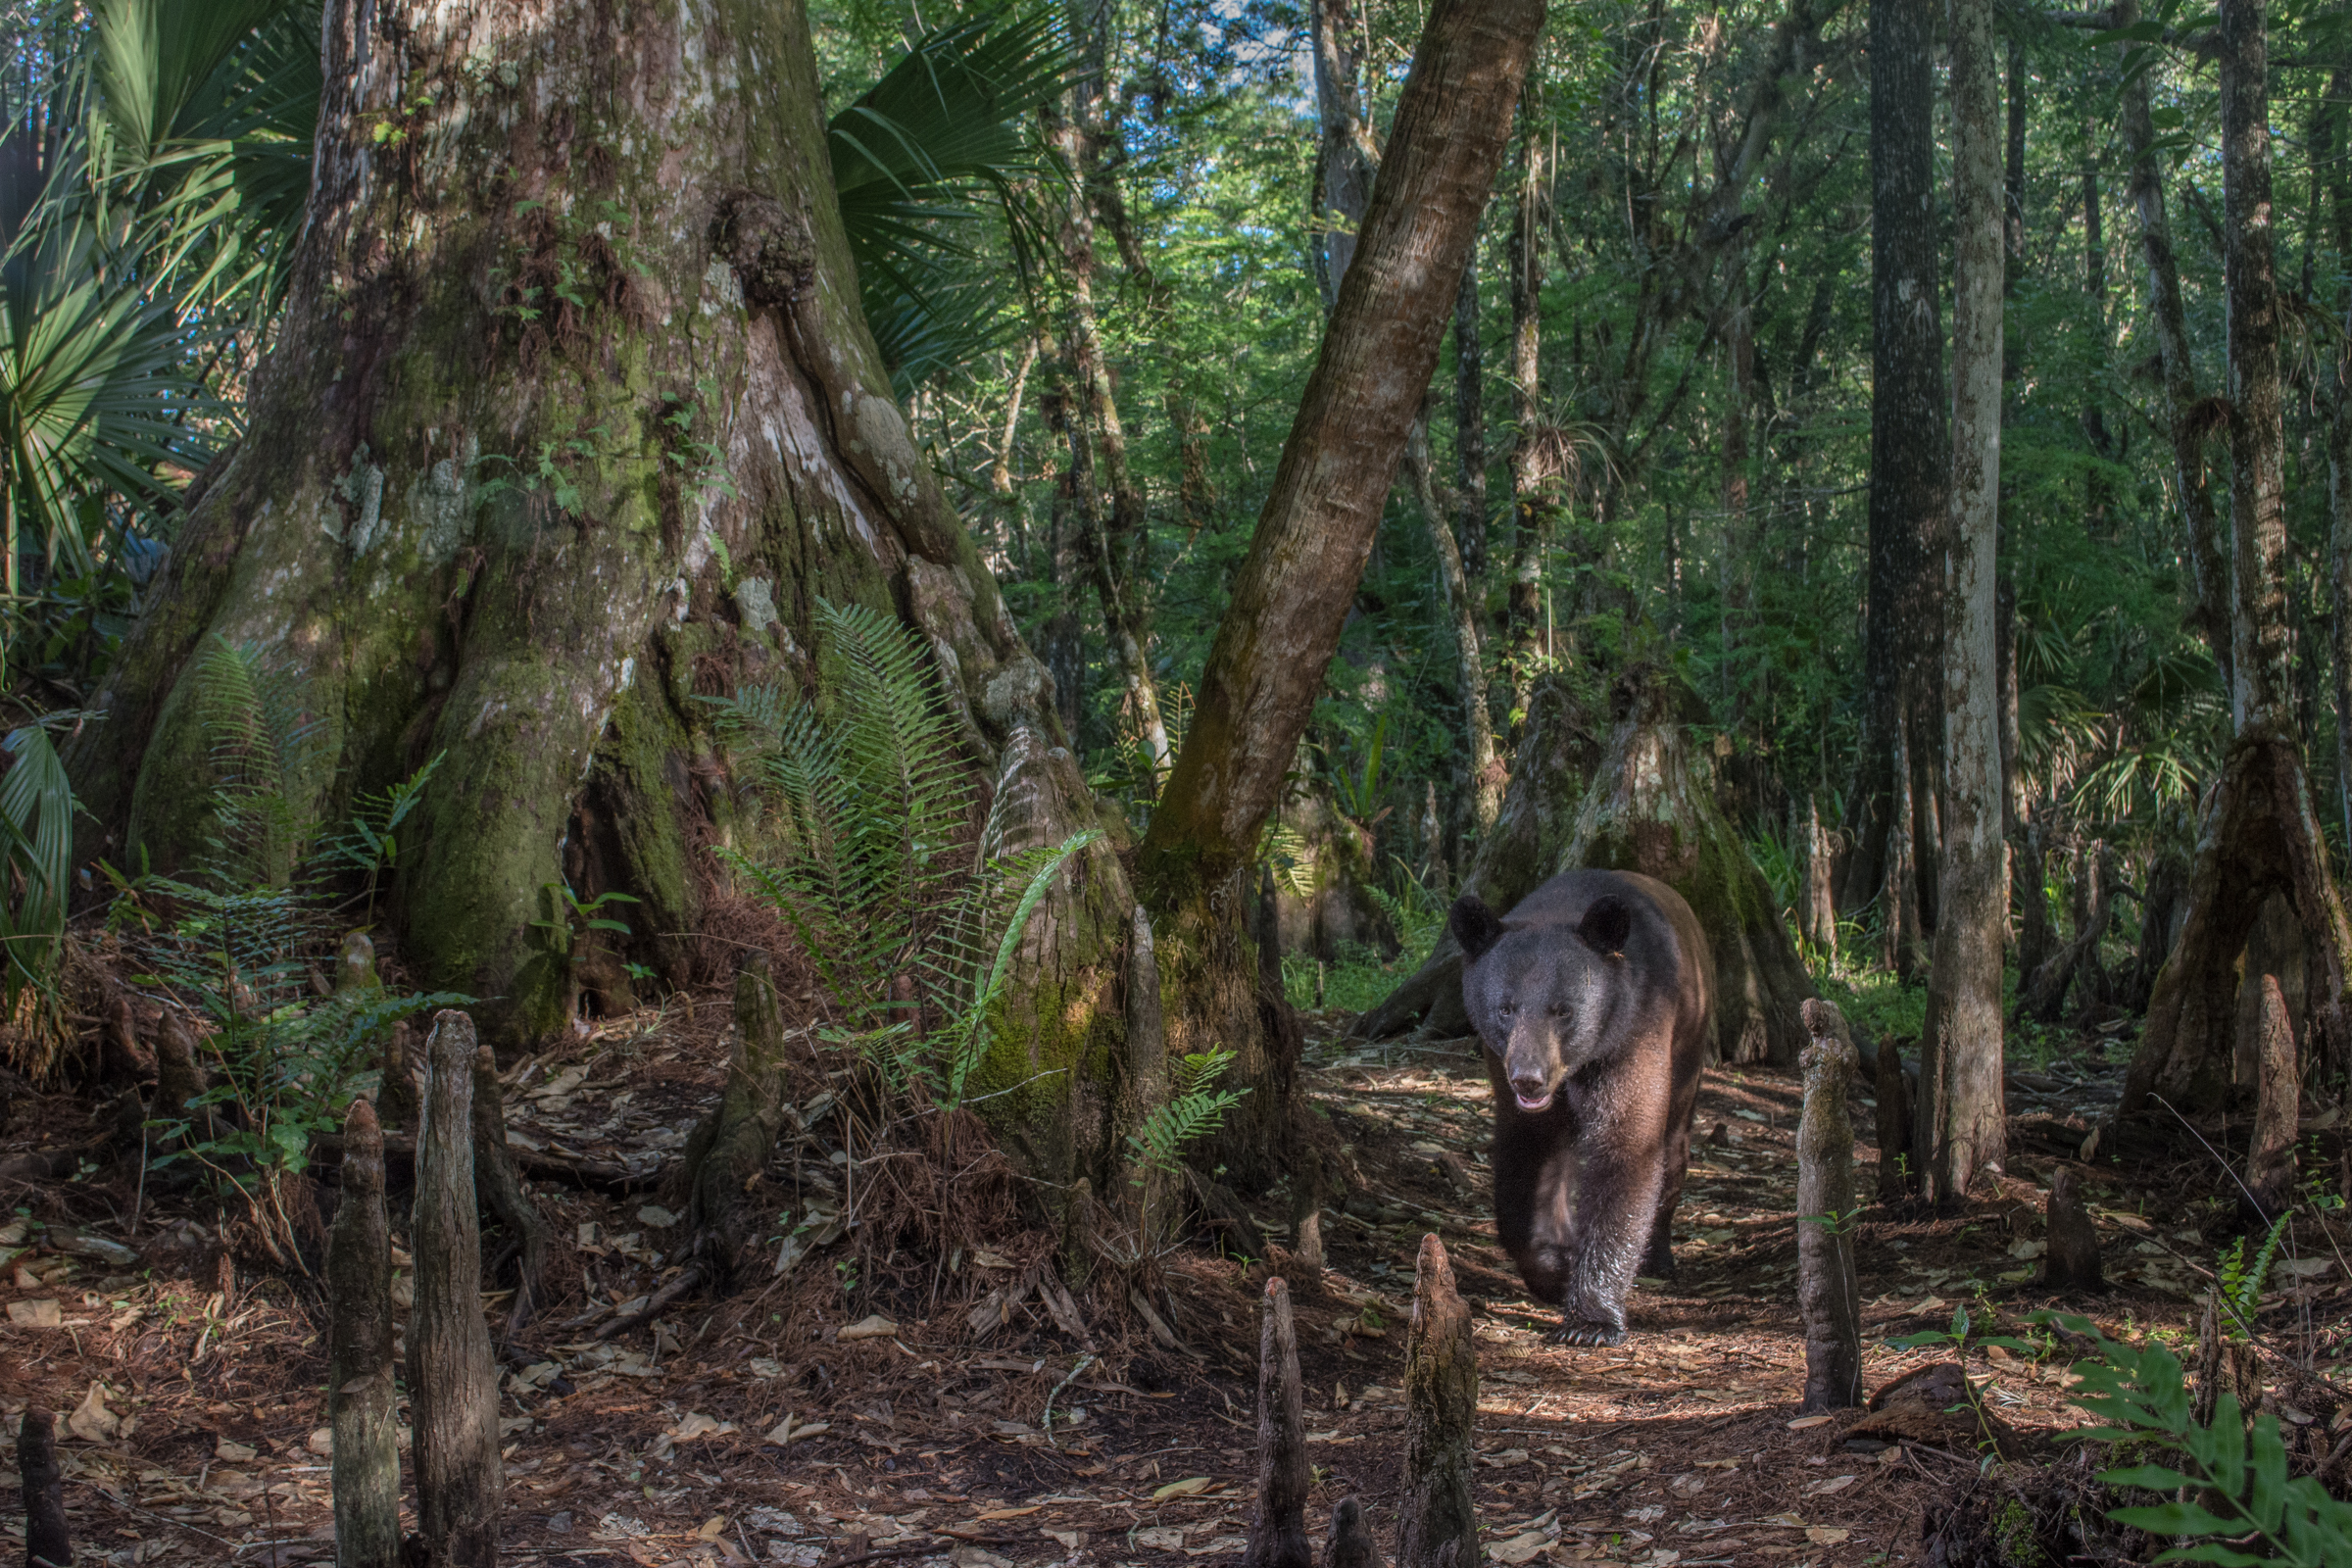 In the shade of a 500-year-old cypress tree, a Florida black bear triggers a remote camera on Green Glades West Ranch, a private property adjacent to Big Cypress National Preserve and the Seminole Tribe of Florida's Big Cypress Reservation.